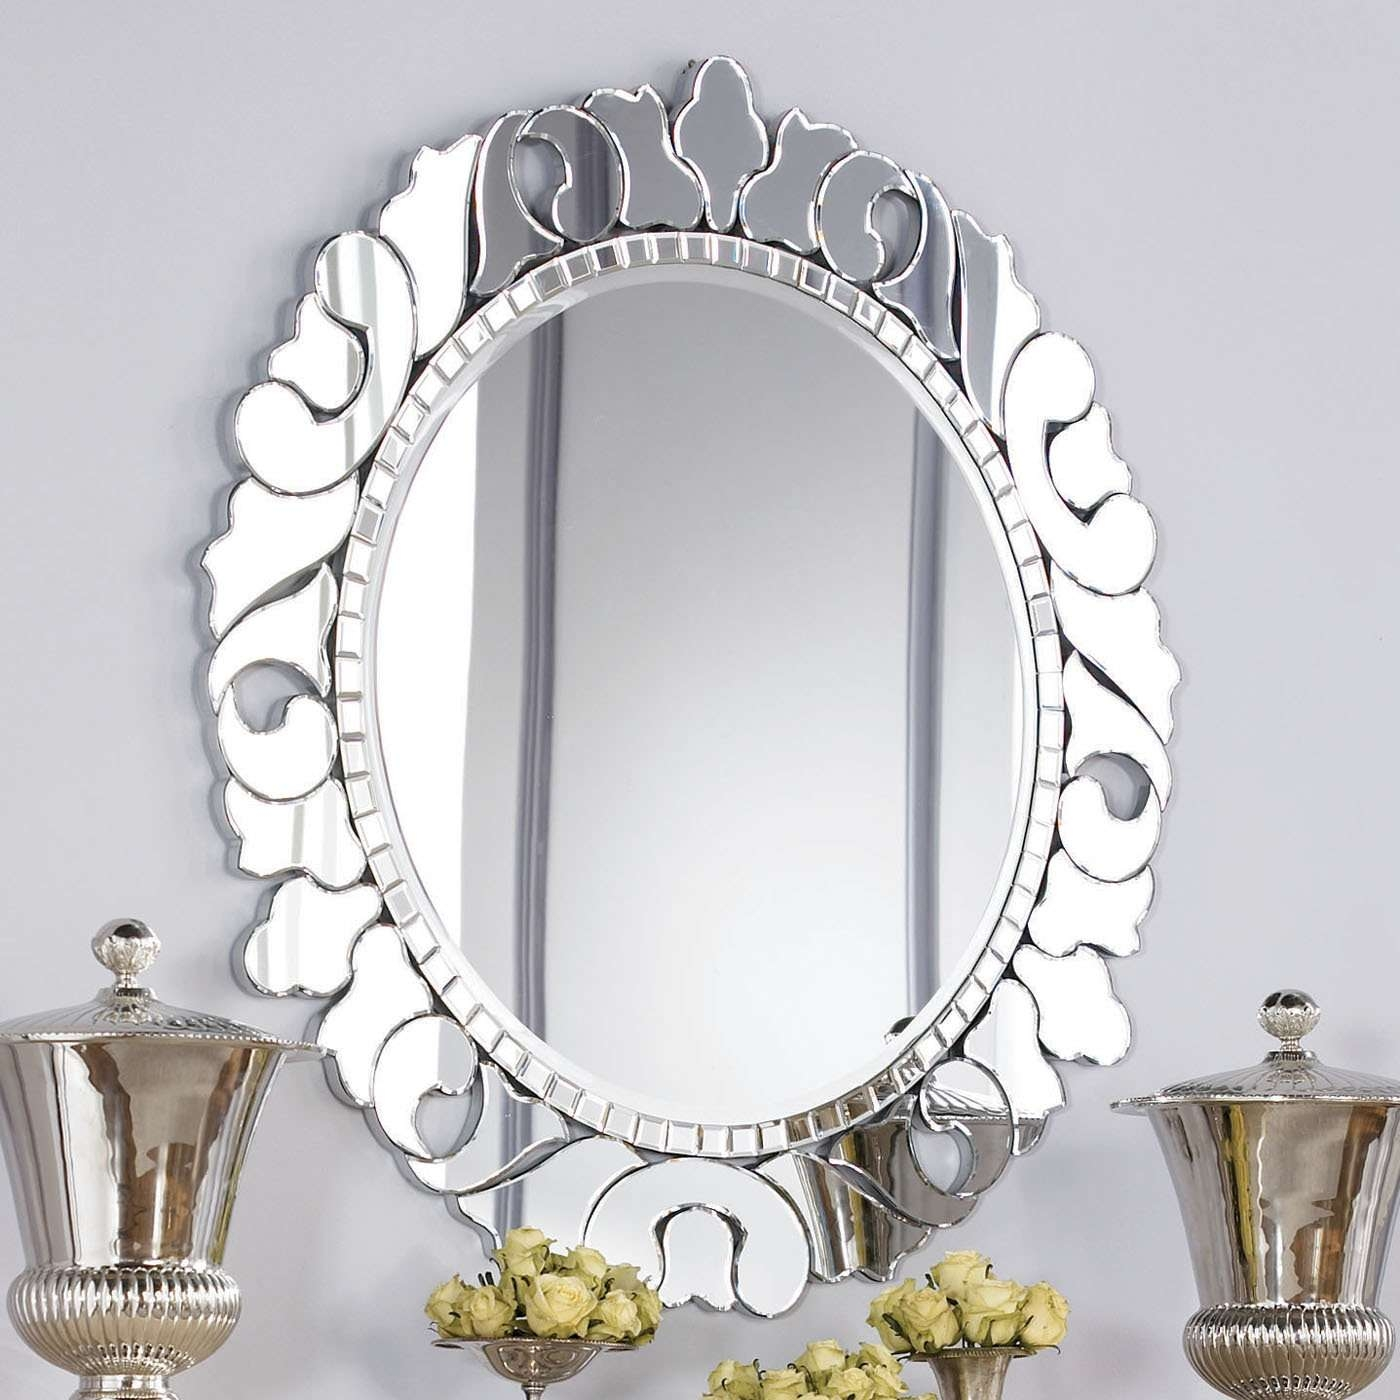 Beautiful Mirrors Mirror Designs Expensive Mirrors Vintage Mirrors Intended For Expensive Mirrors (View 2 of 15)